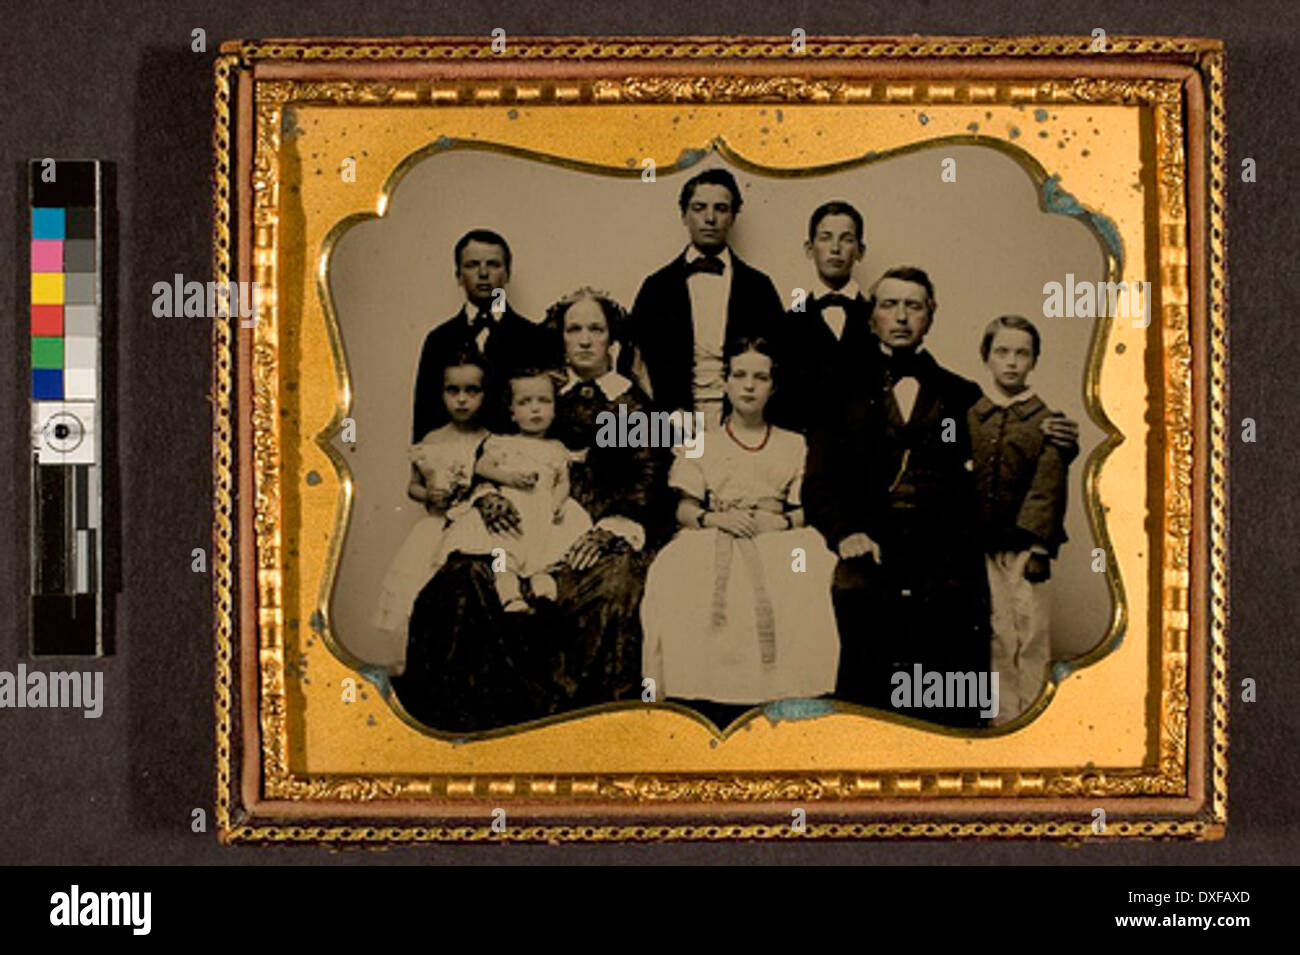 Man and woman with seven children Man and woman with seven children - Stock Image